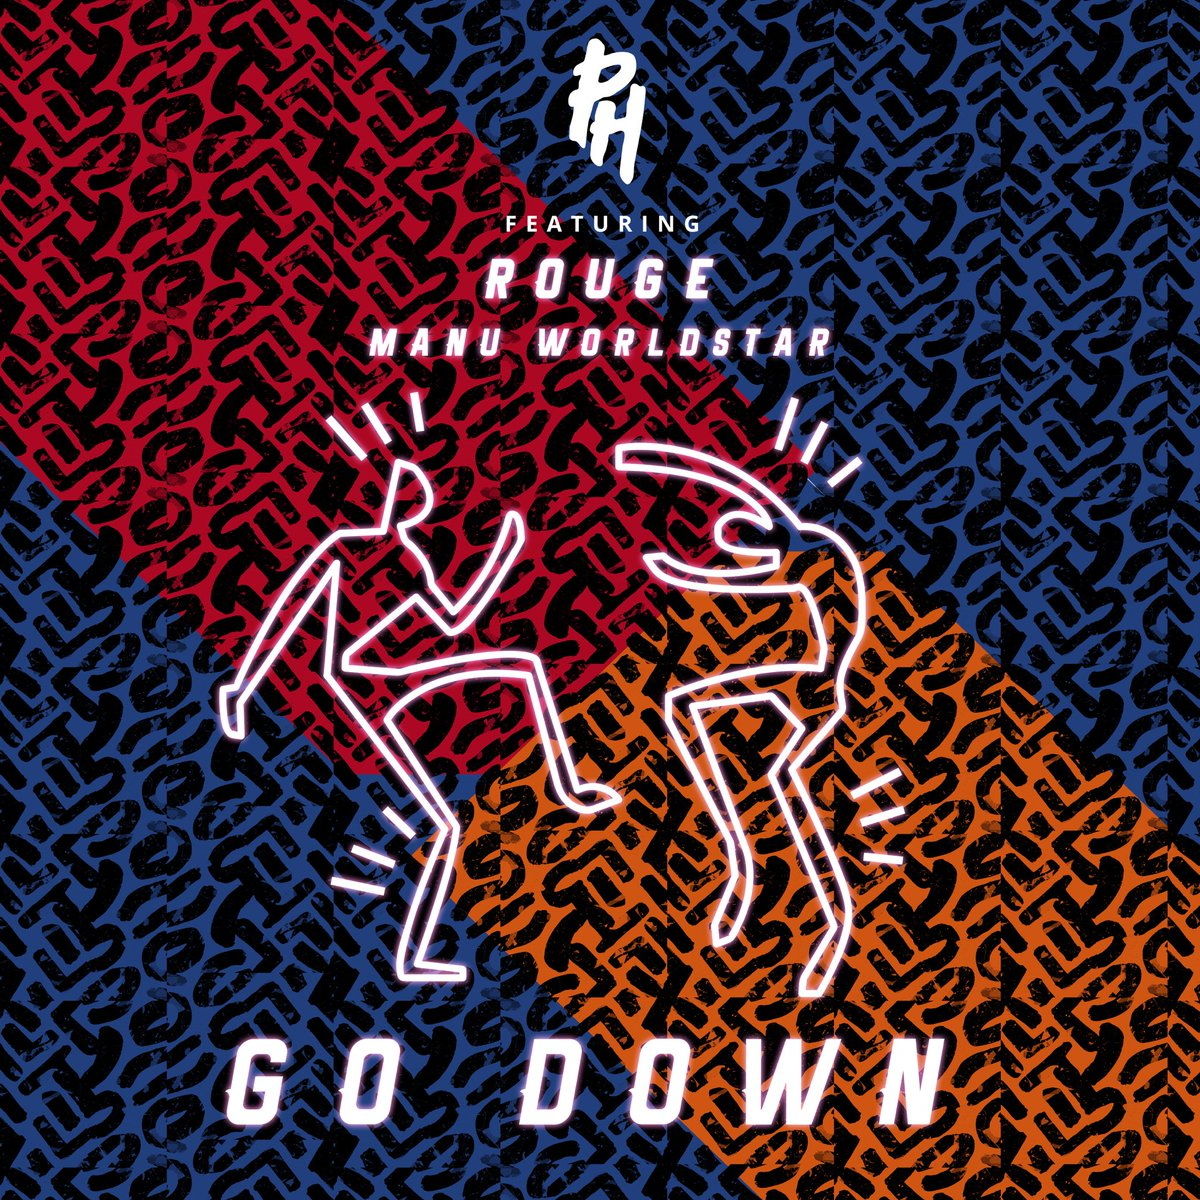 dj ph Have You Heard DJ PH's New 'Go Down' Song Ft. Manu Worldstar & Rouge Yet? Dq0dX6tXgAAfPuT